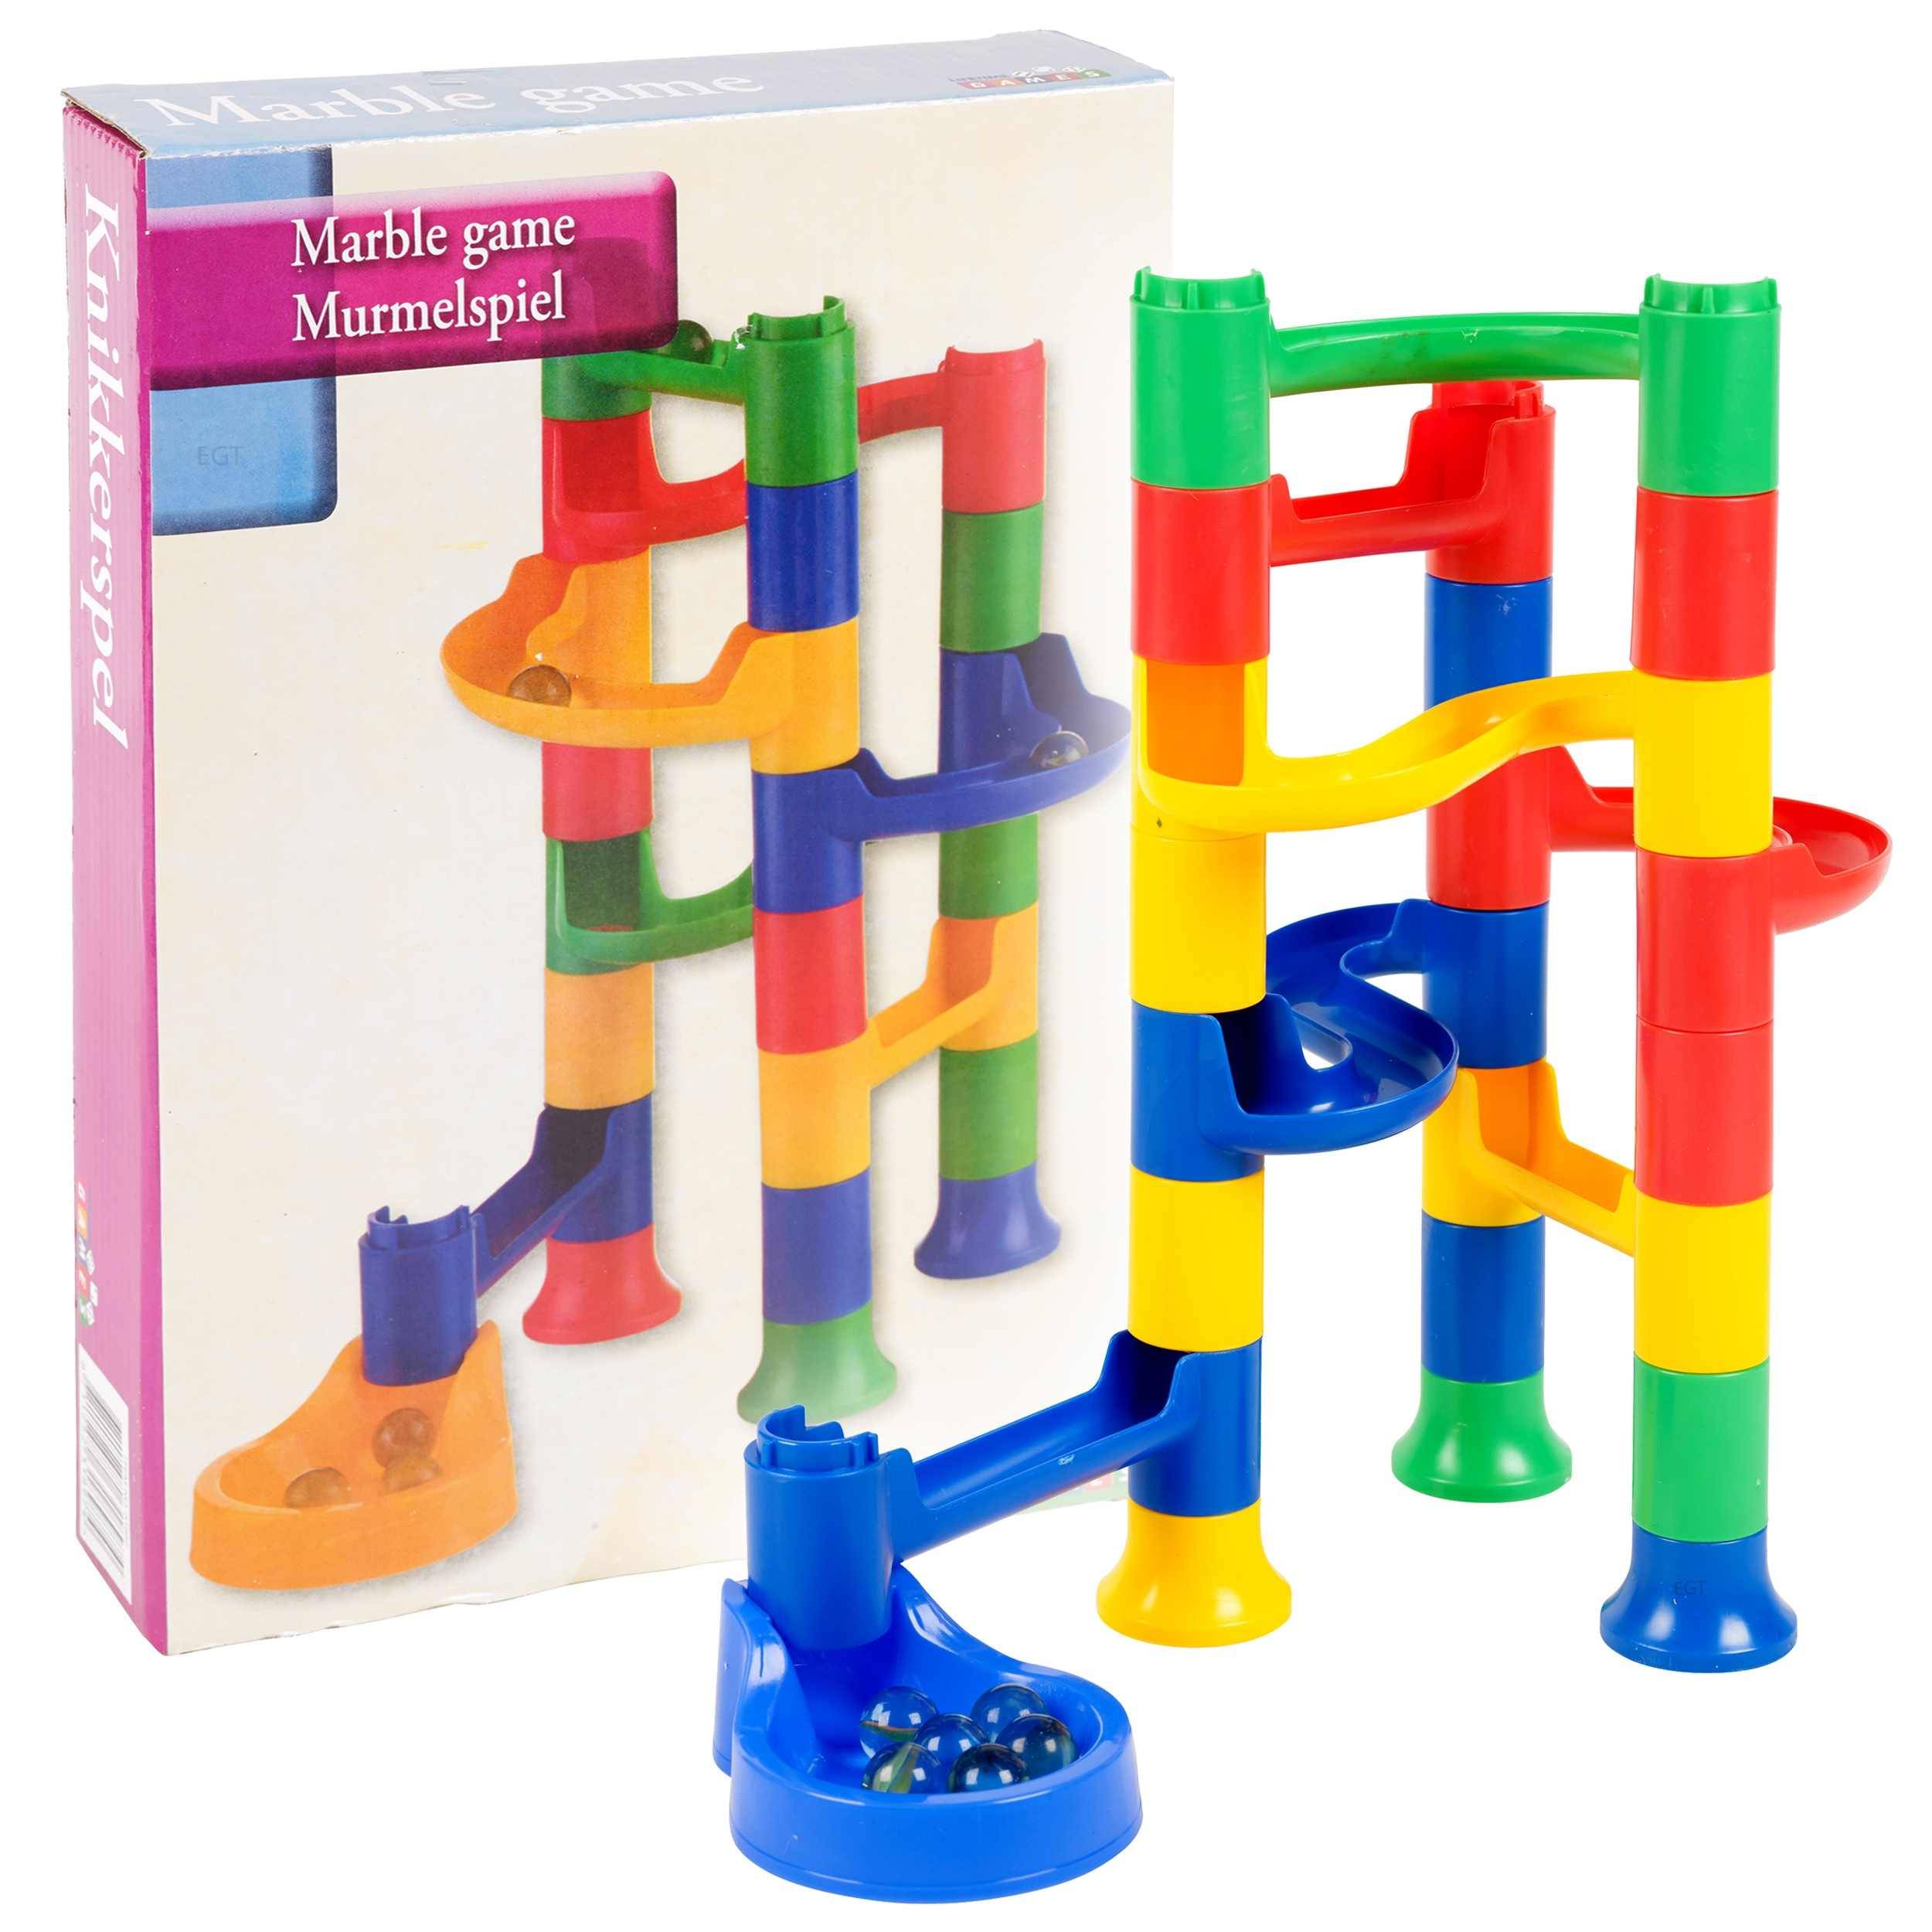 Construction Toys Product : Kids marble run race construction kit childrens toy